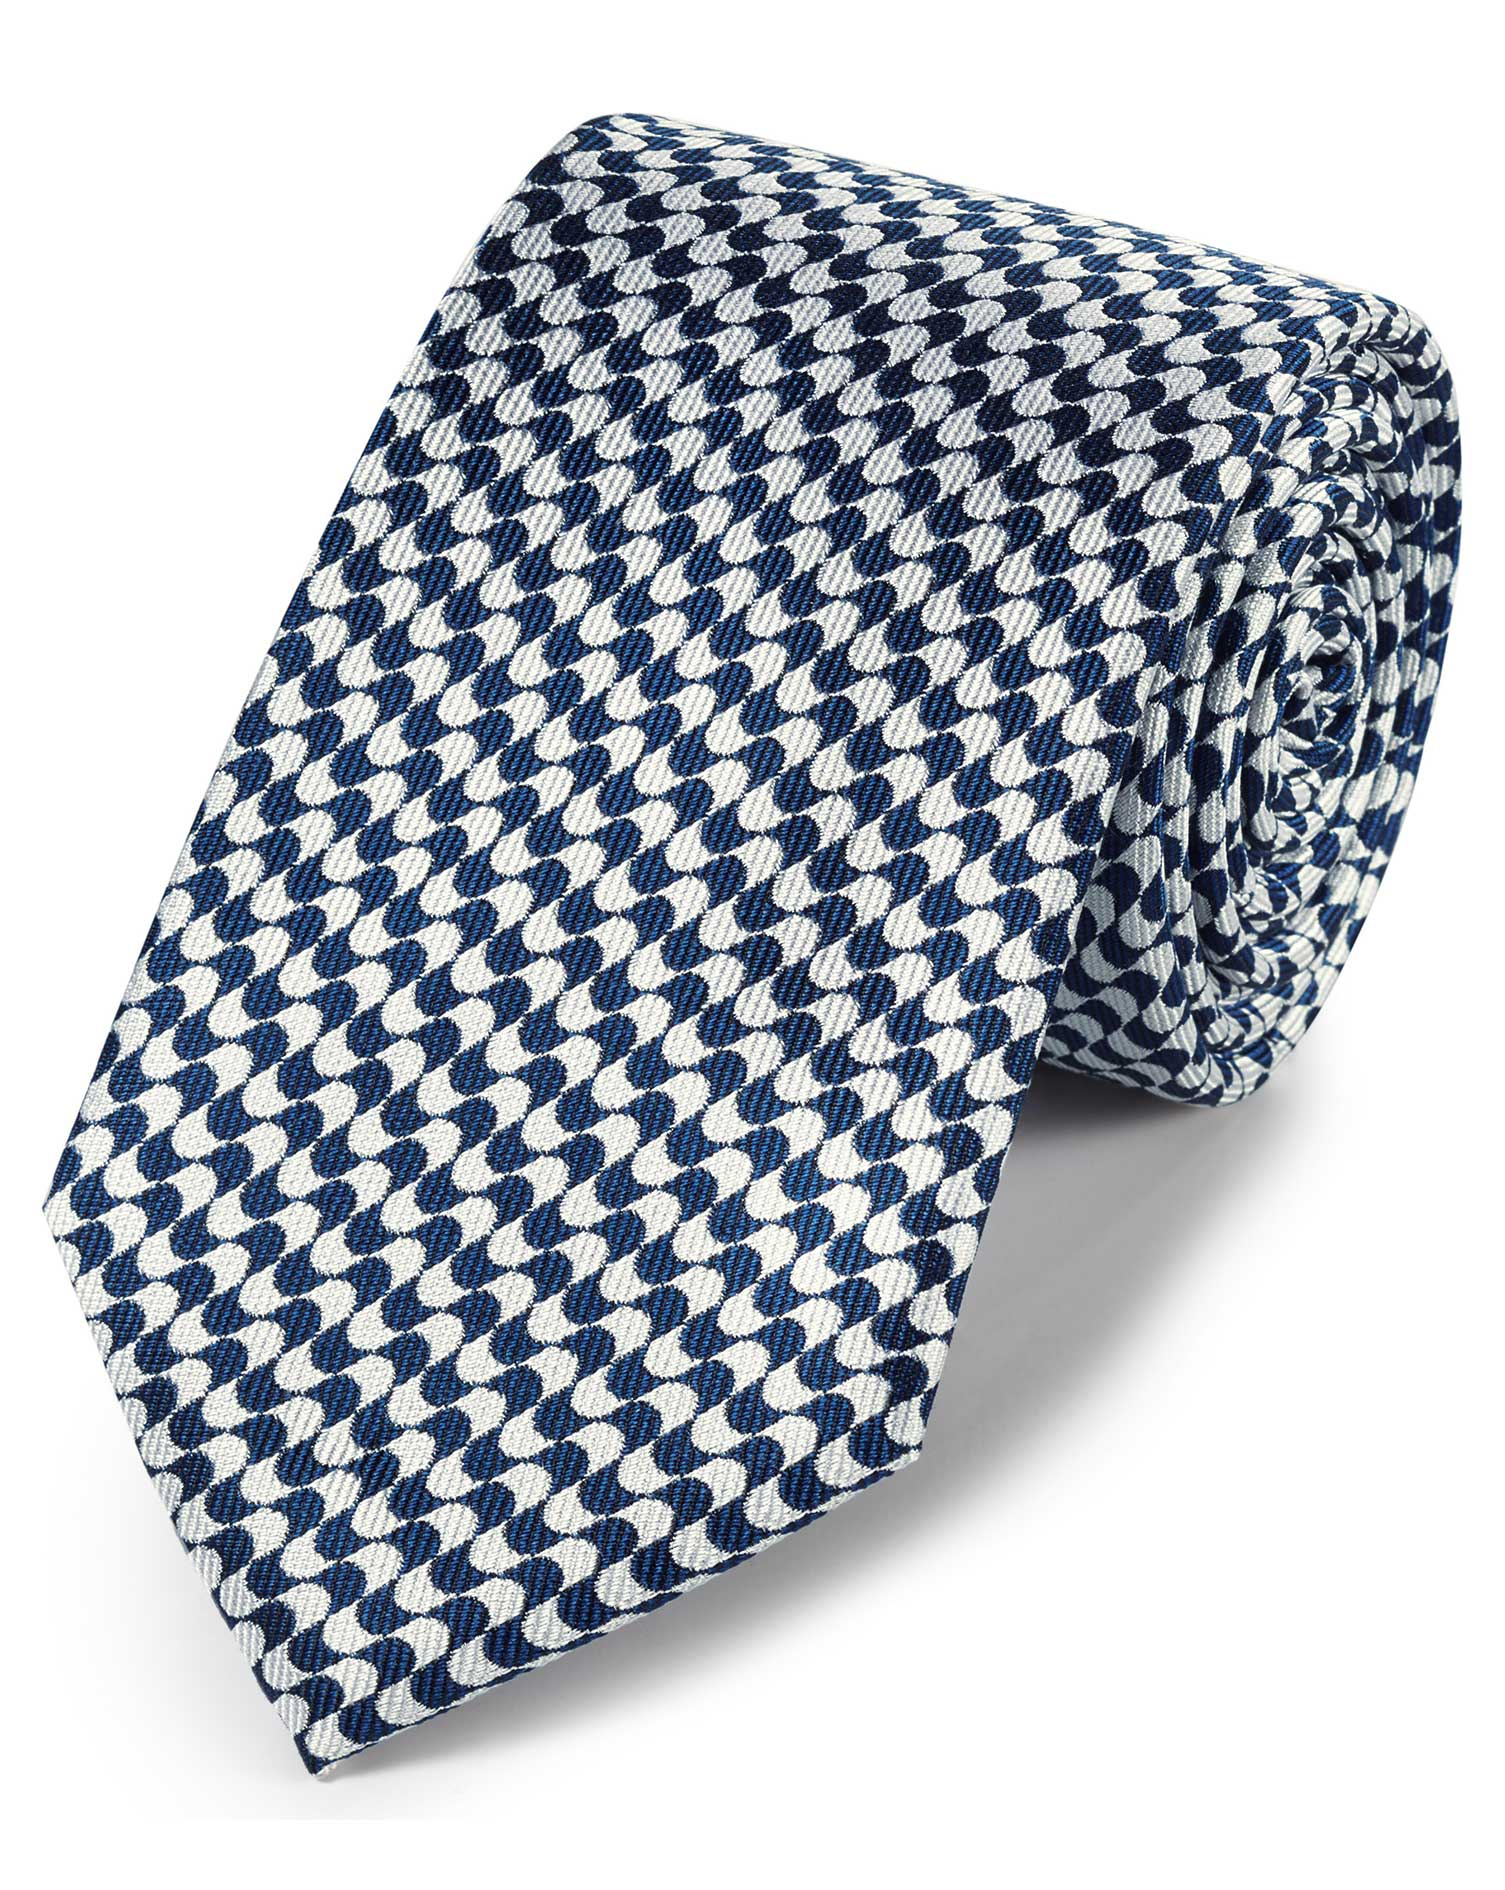 Navy Blue and White Silk Geometric Classic Tie Size OSFA by Charles Tyrwhitt